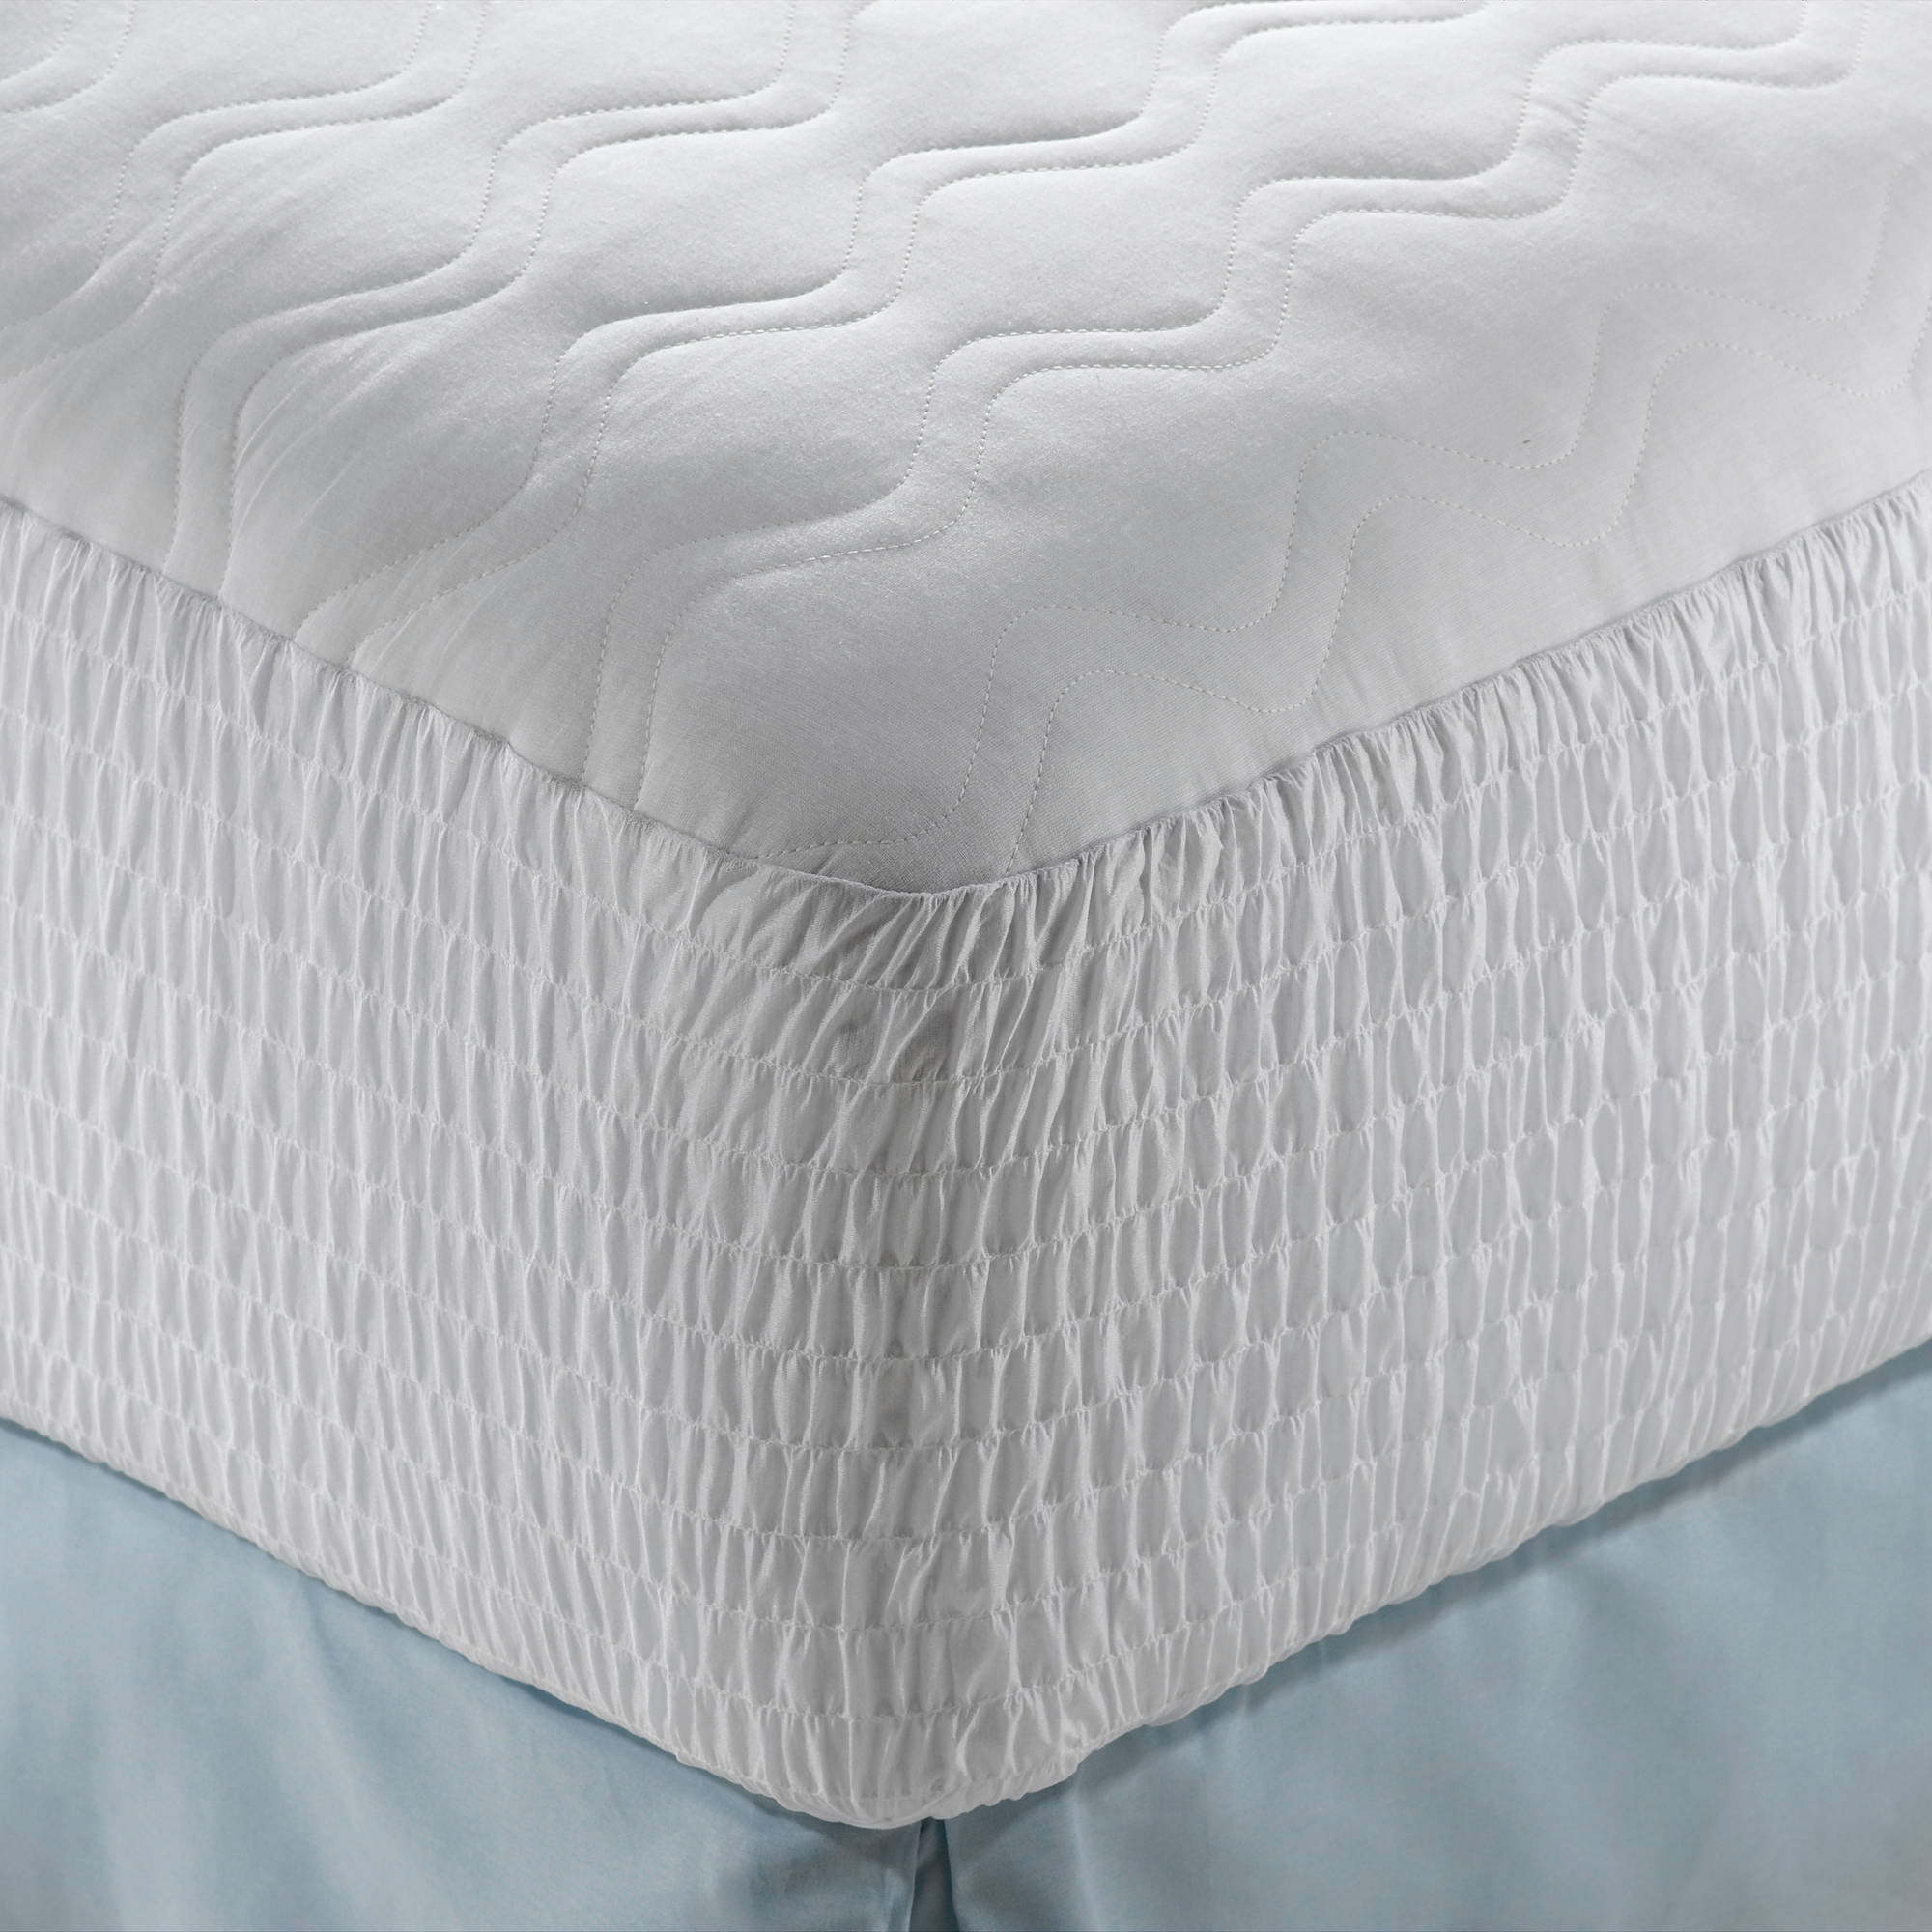 product store your majestic mattress furniture topper top pillow bedroom pacifica outlet